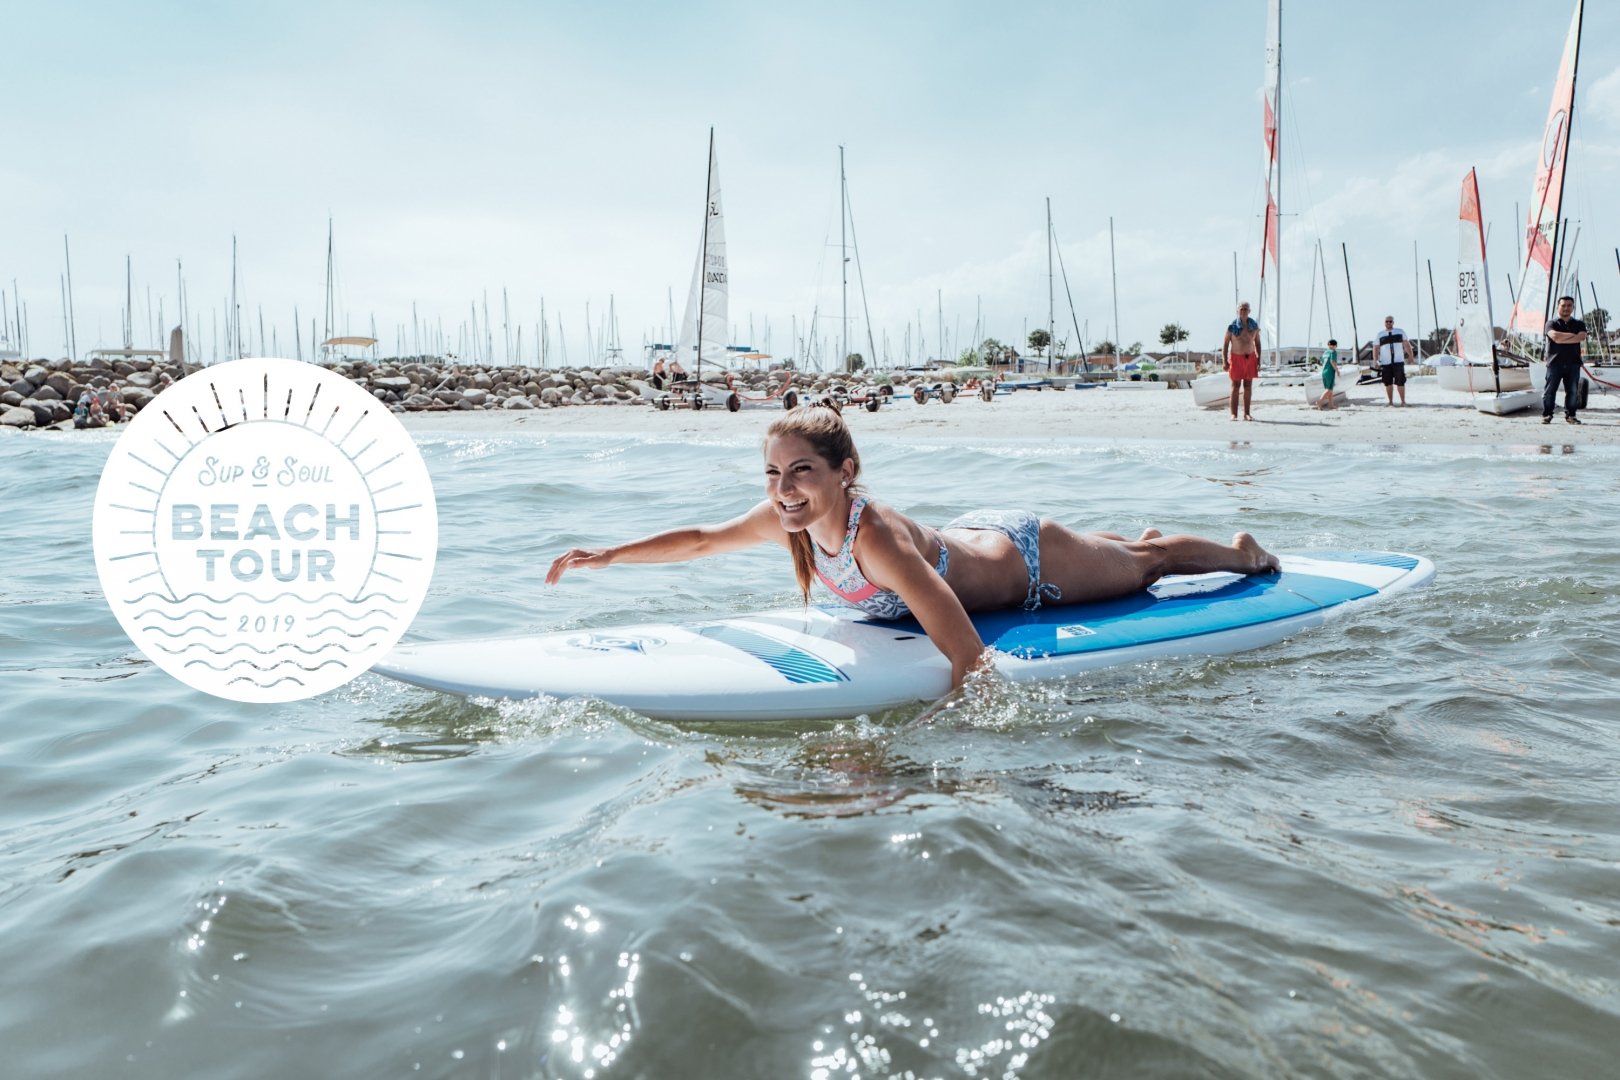 SUP & SOUL Beach Tour